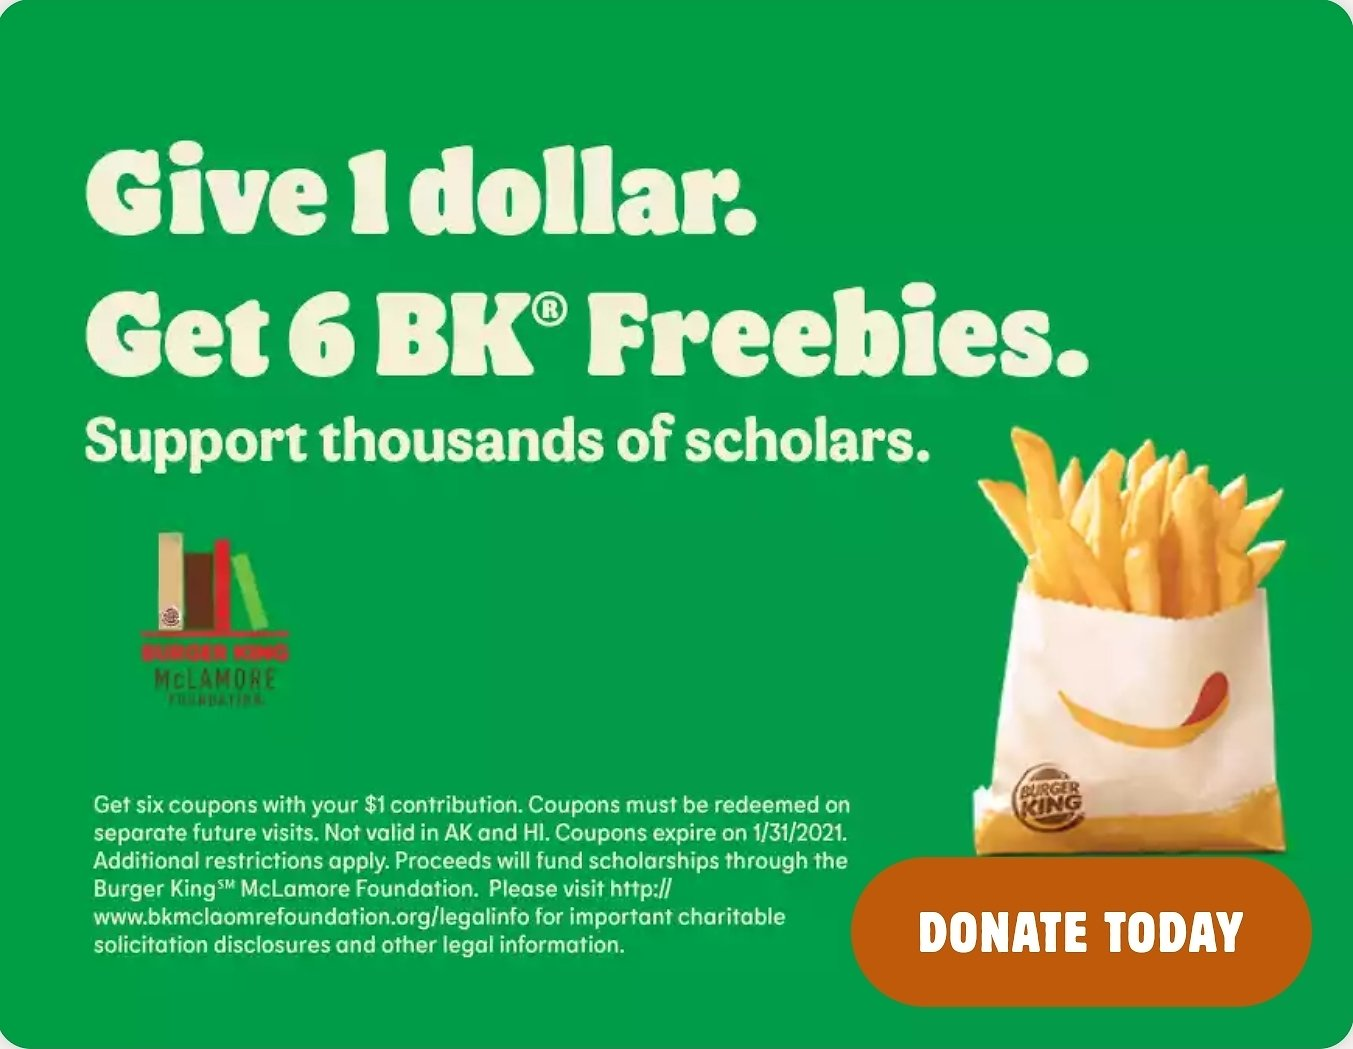 Give $1 & Get $6 Freebies Booklet